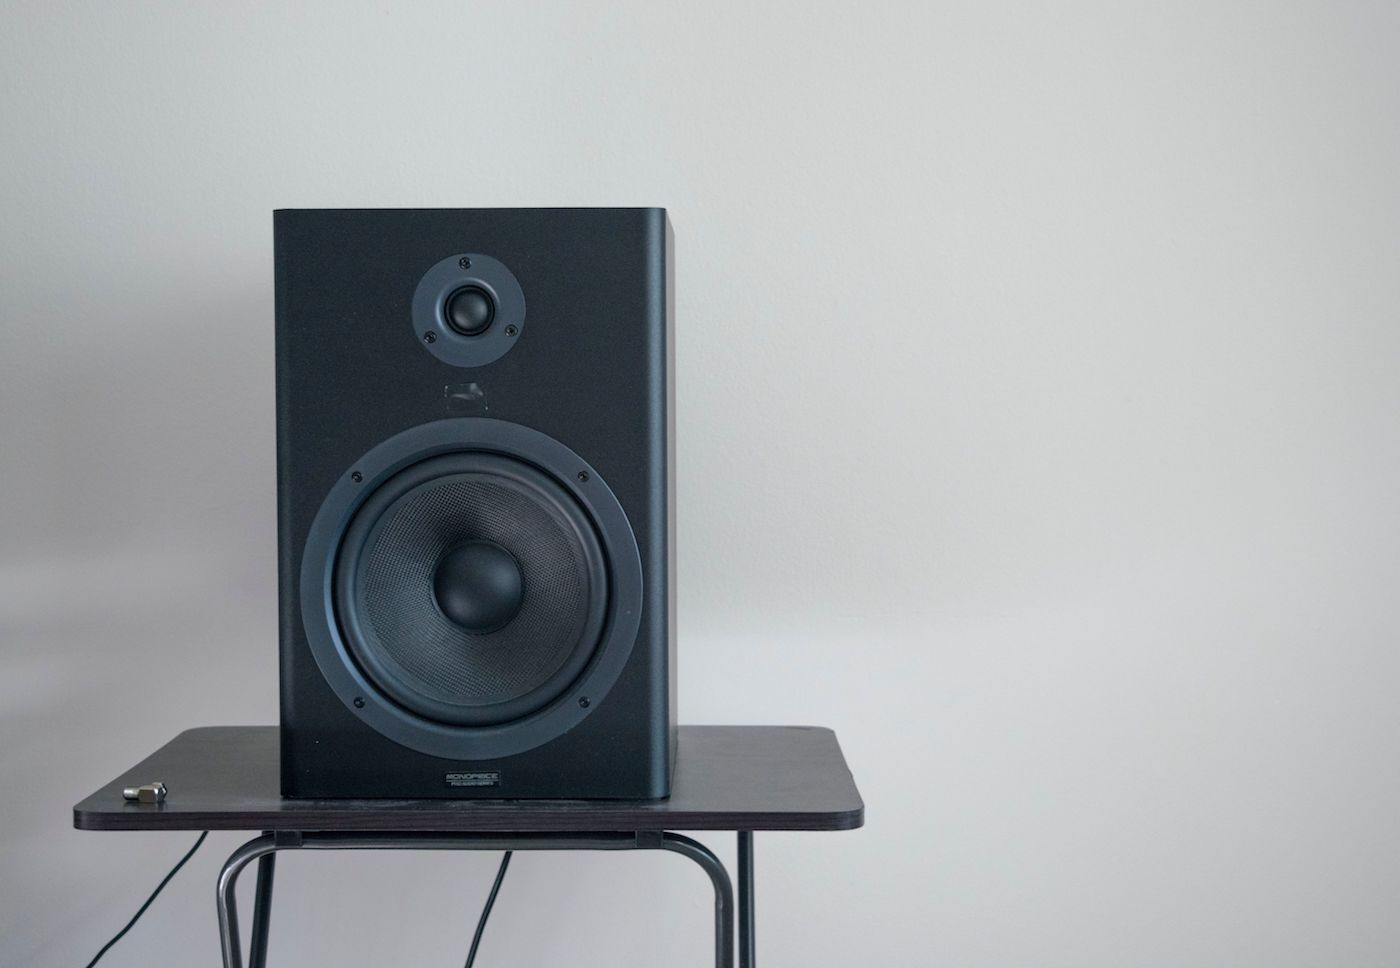 Mastering for different speakers